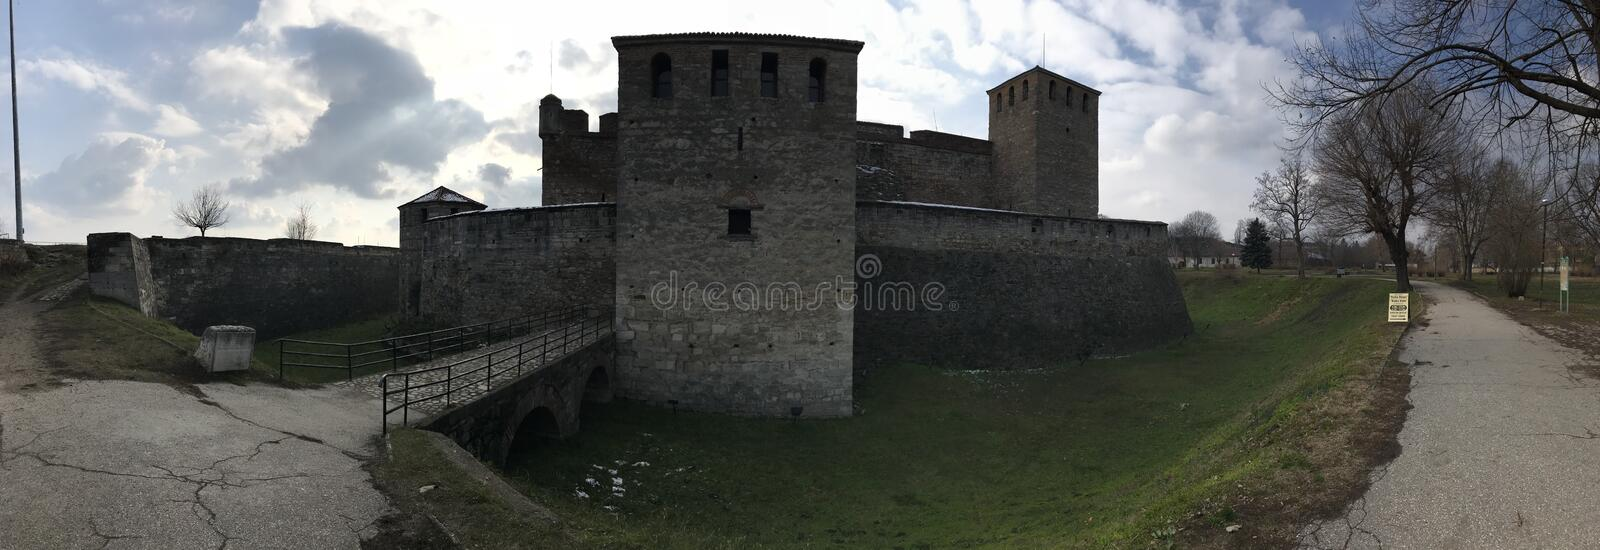 Baba Vida Fortress, Vidin, Bulgaria stock photo